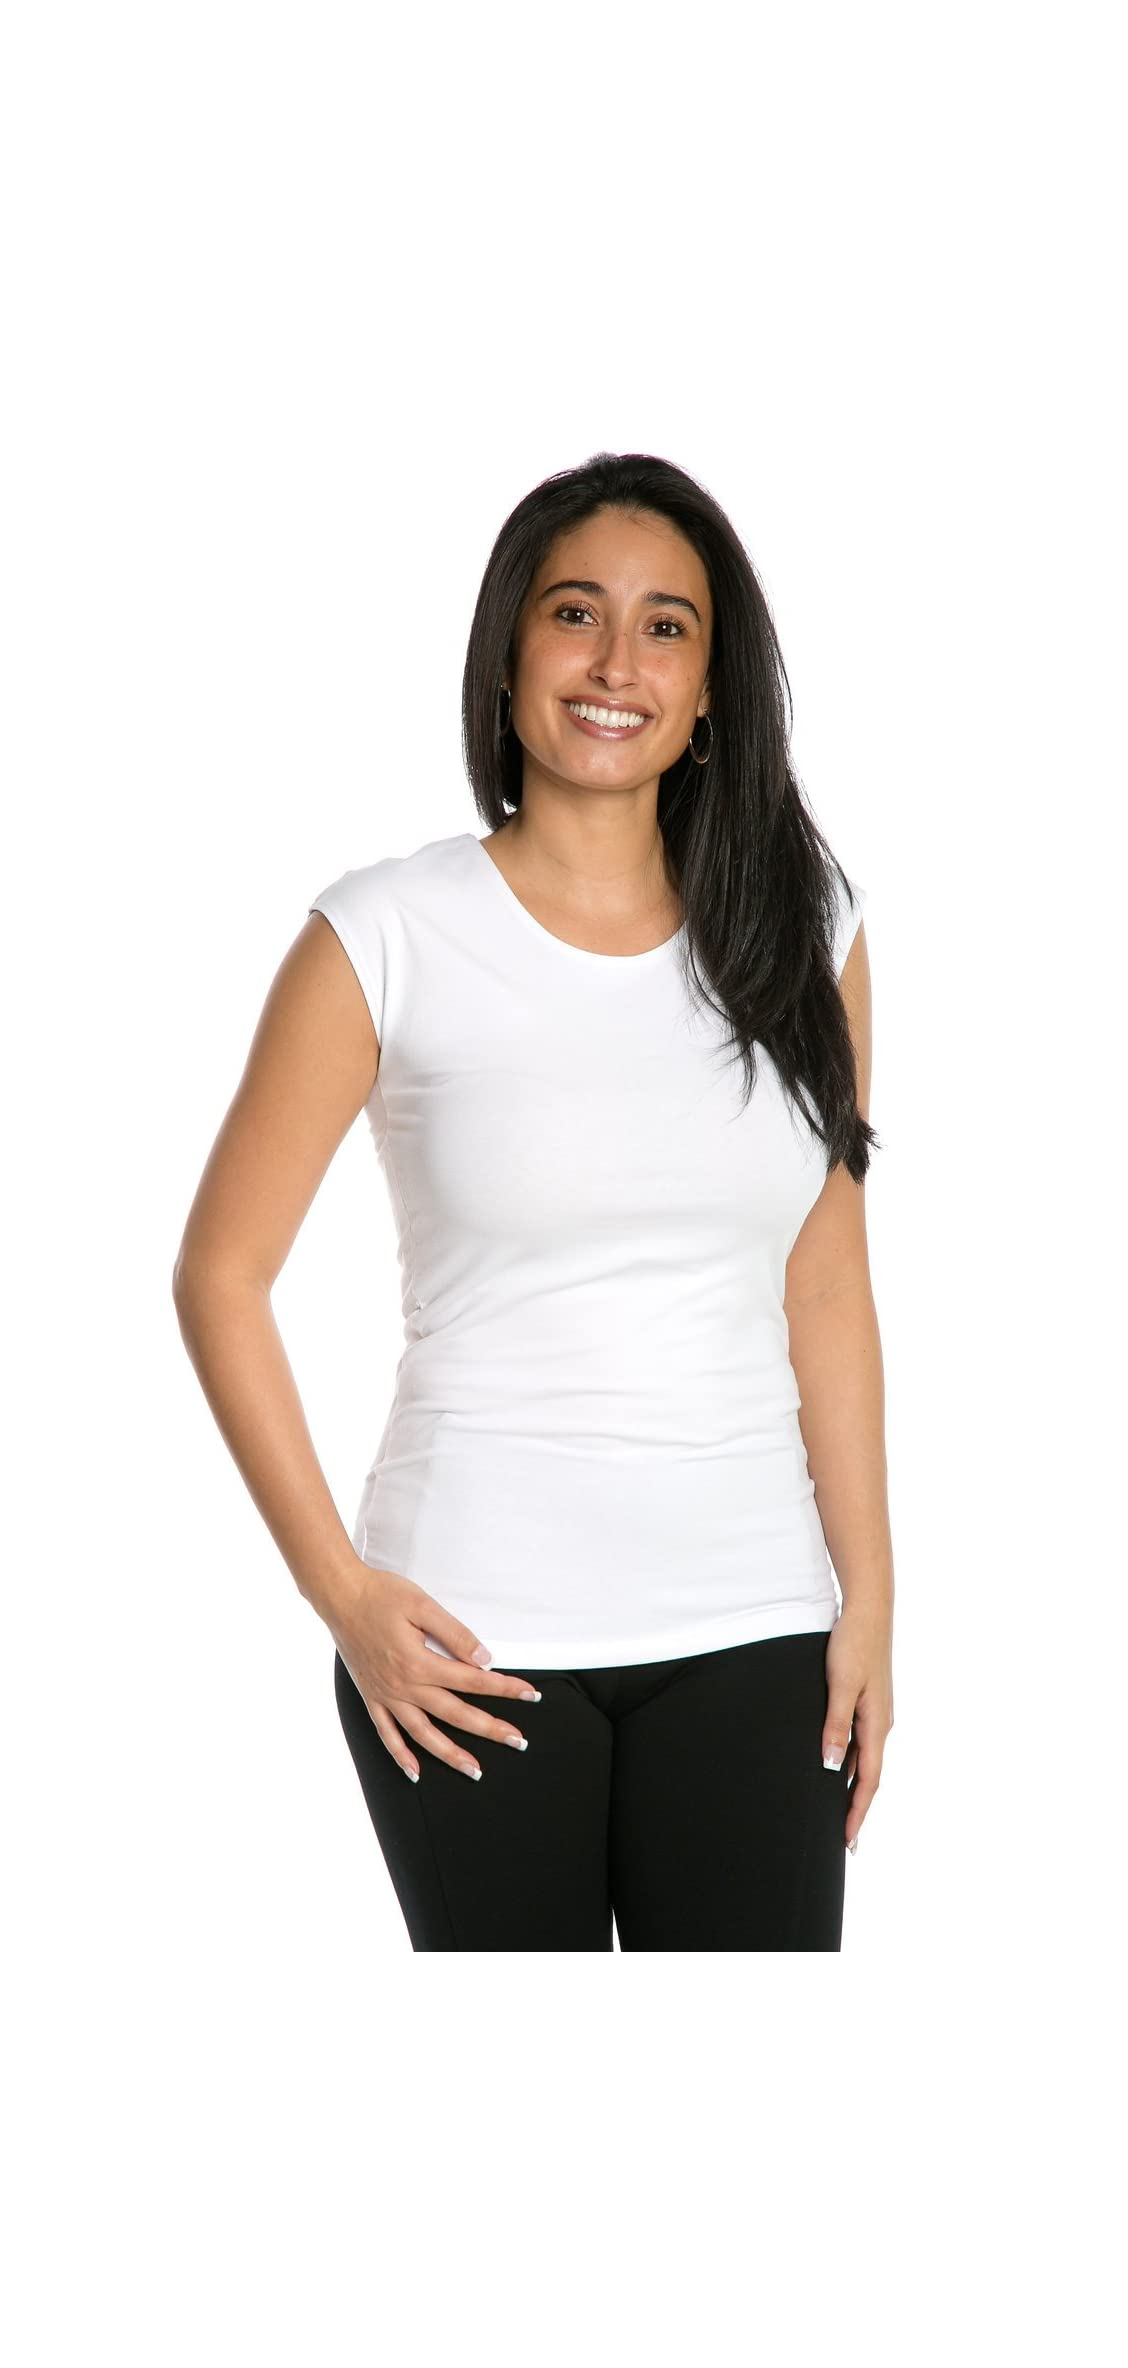 Heirloom Cap Sleeve Tee Usa Made Extra Length Layering Comfy Fit